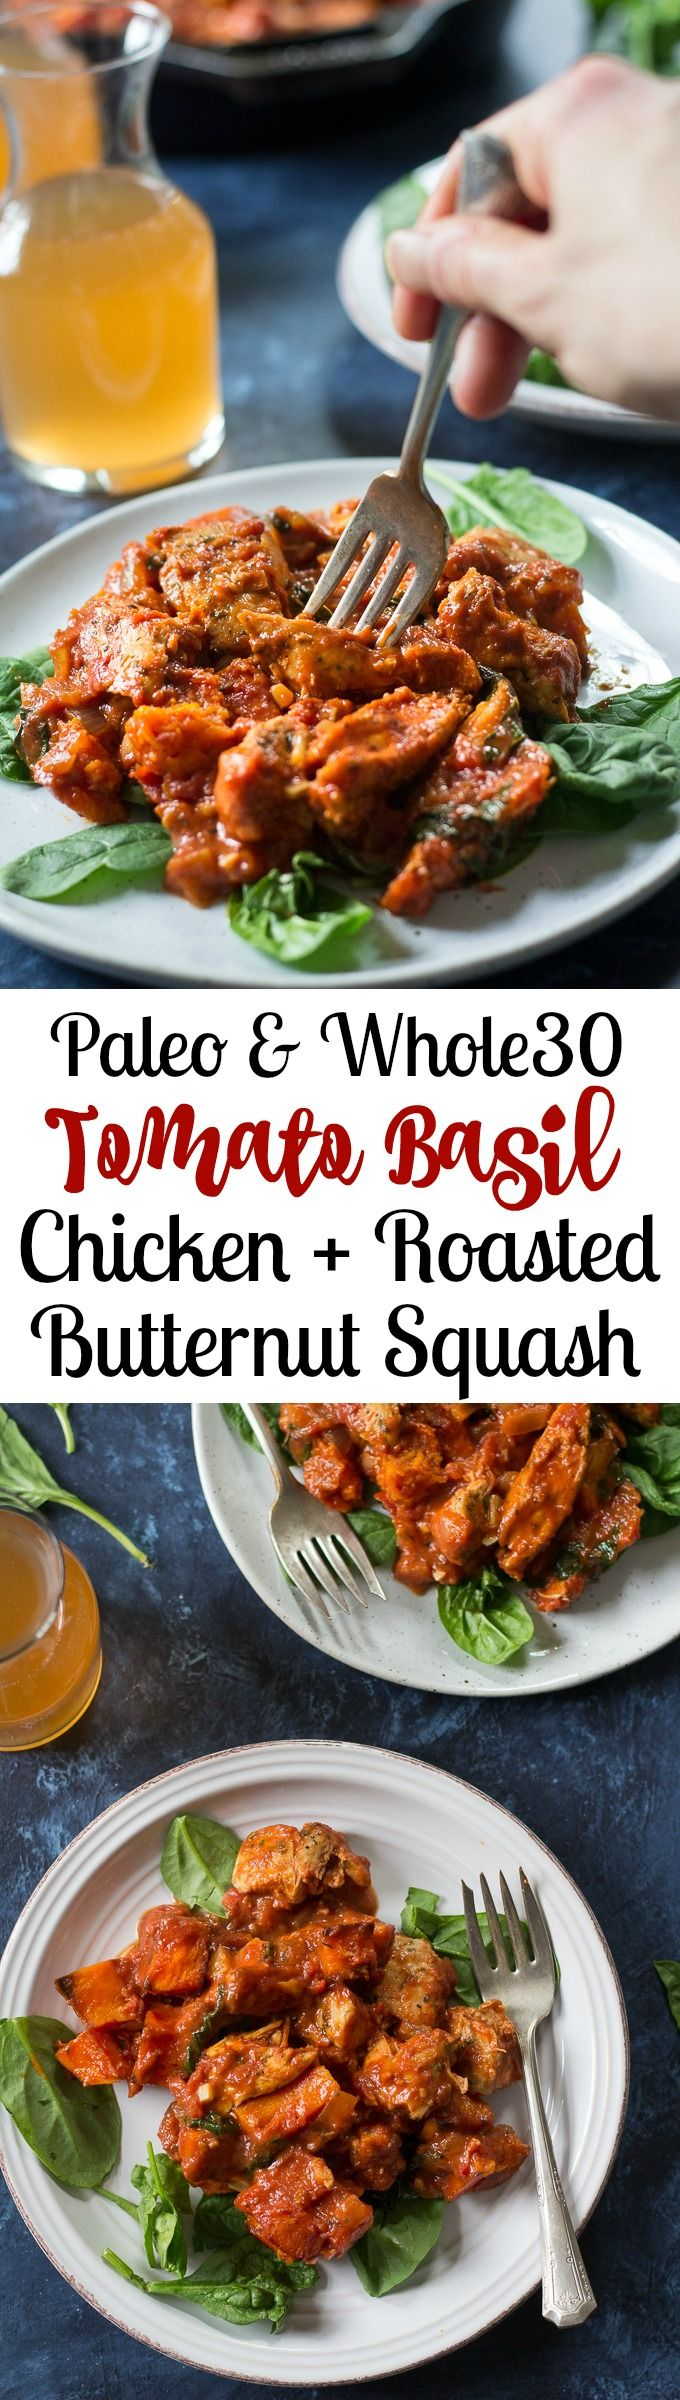 Chicken 65 healthy food kitchen - Creamy Paleo Tomato Basil Chicken With Roasted Butternut Whole30